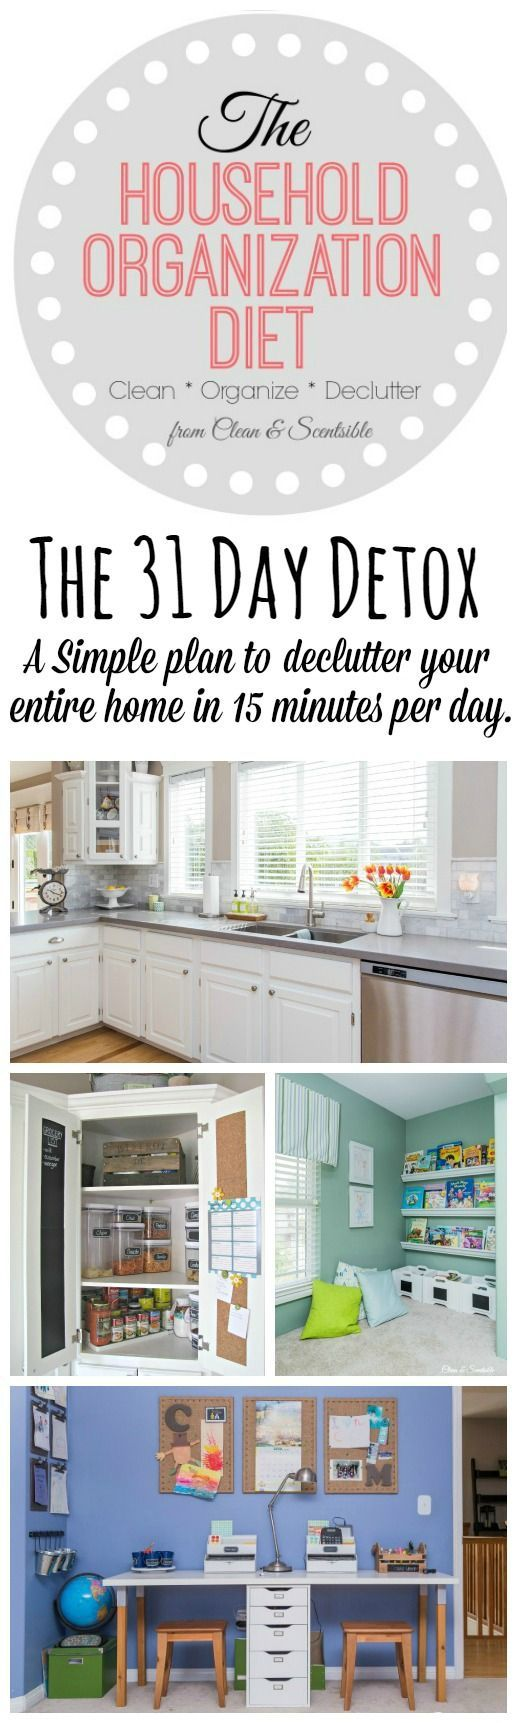 Add this month long decluttering plan to your spring cleaning checklist and start the season off with a fresh new home!